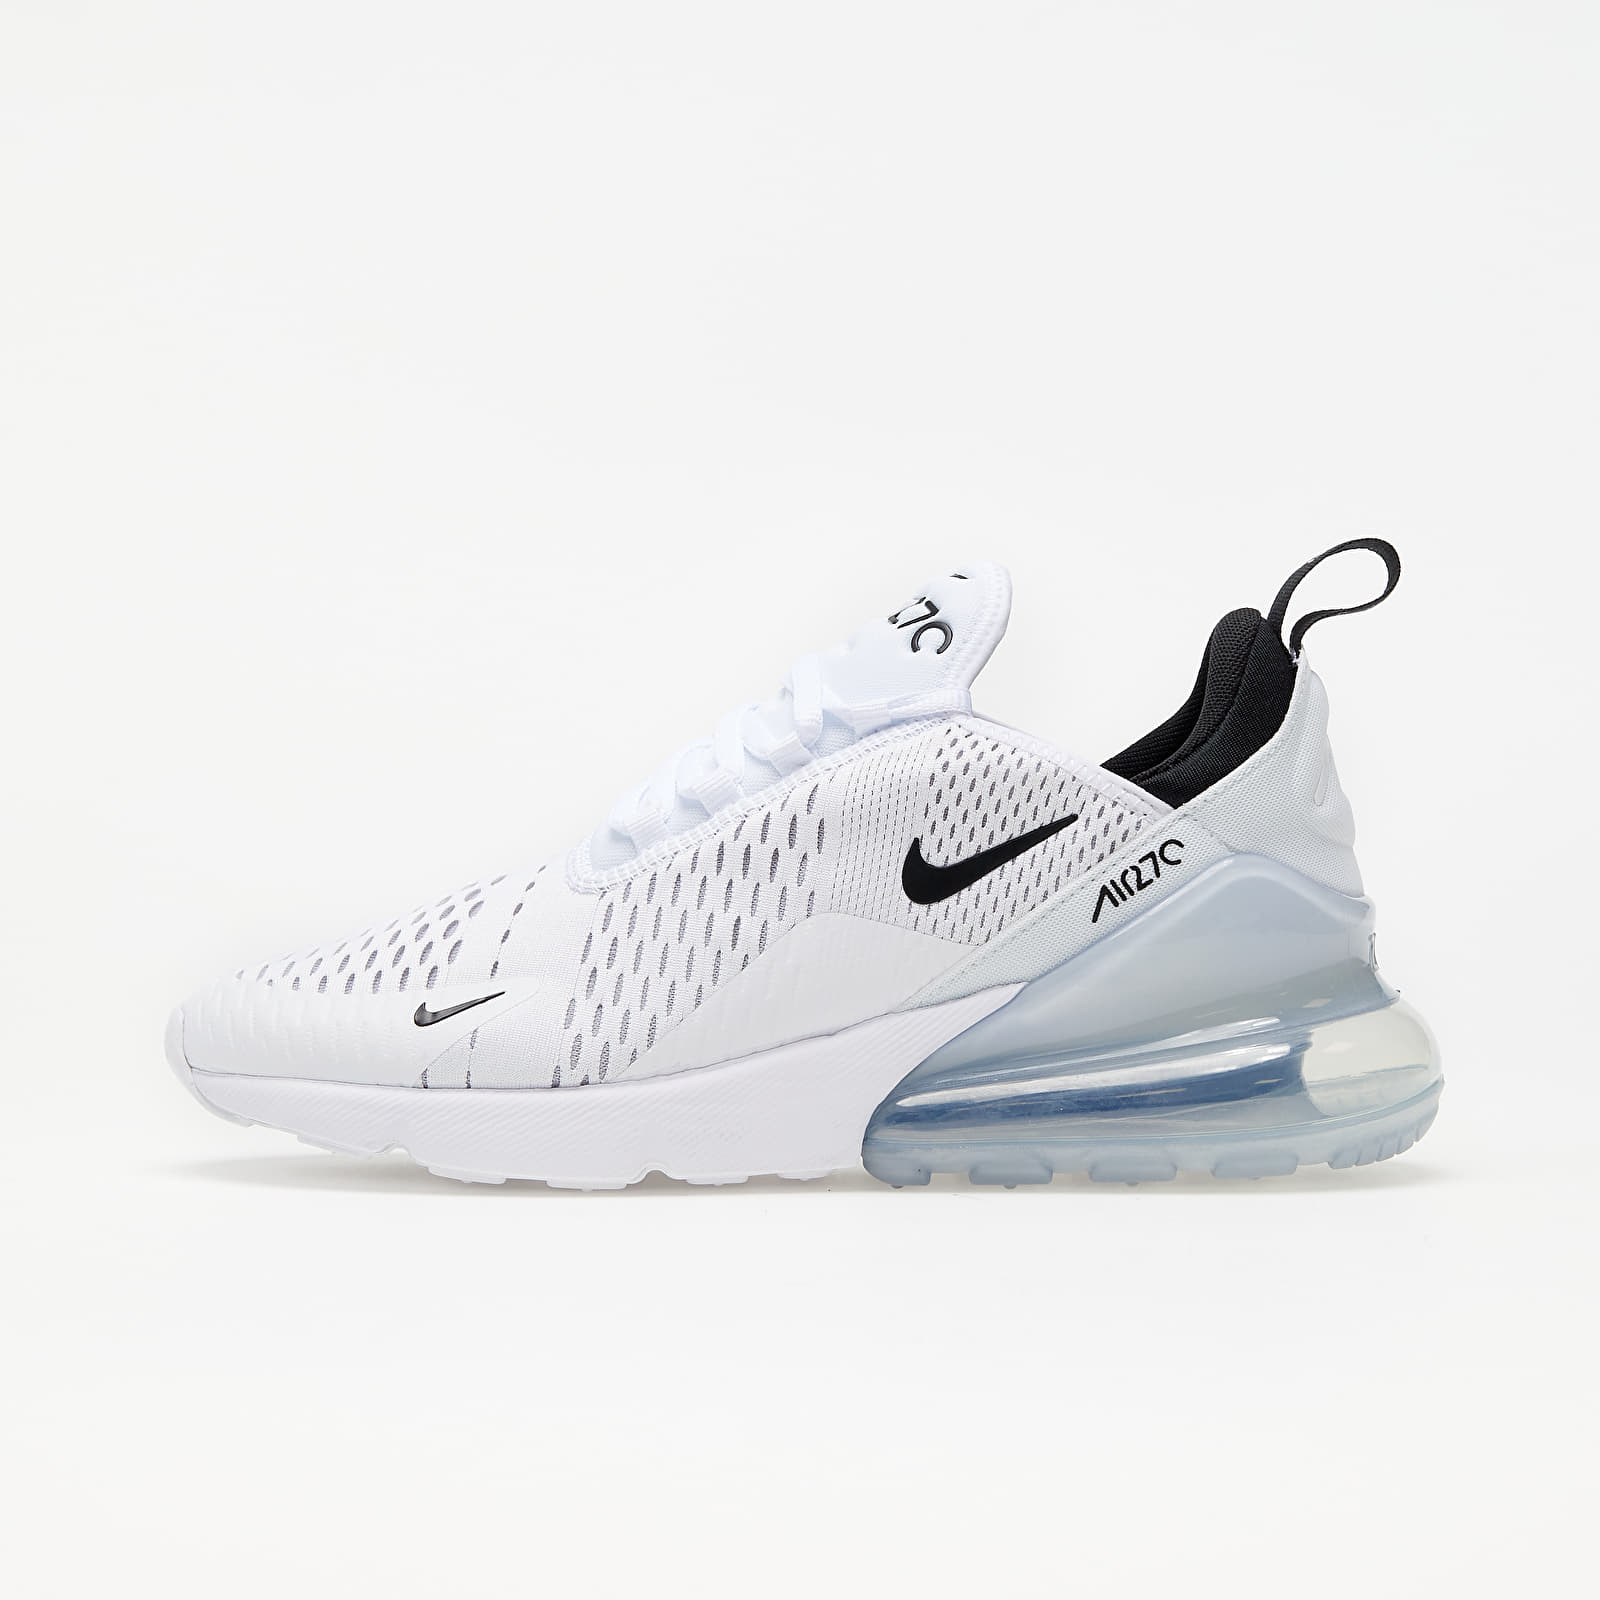 Nike Air Max 270 White/ Black-White EUR 40.5